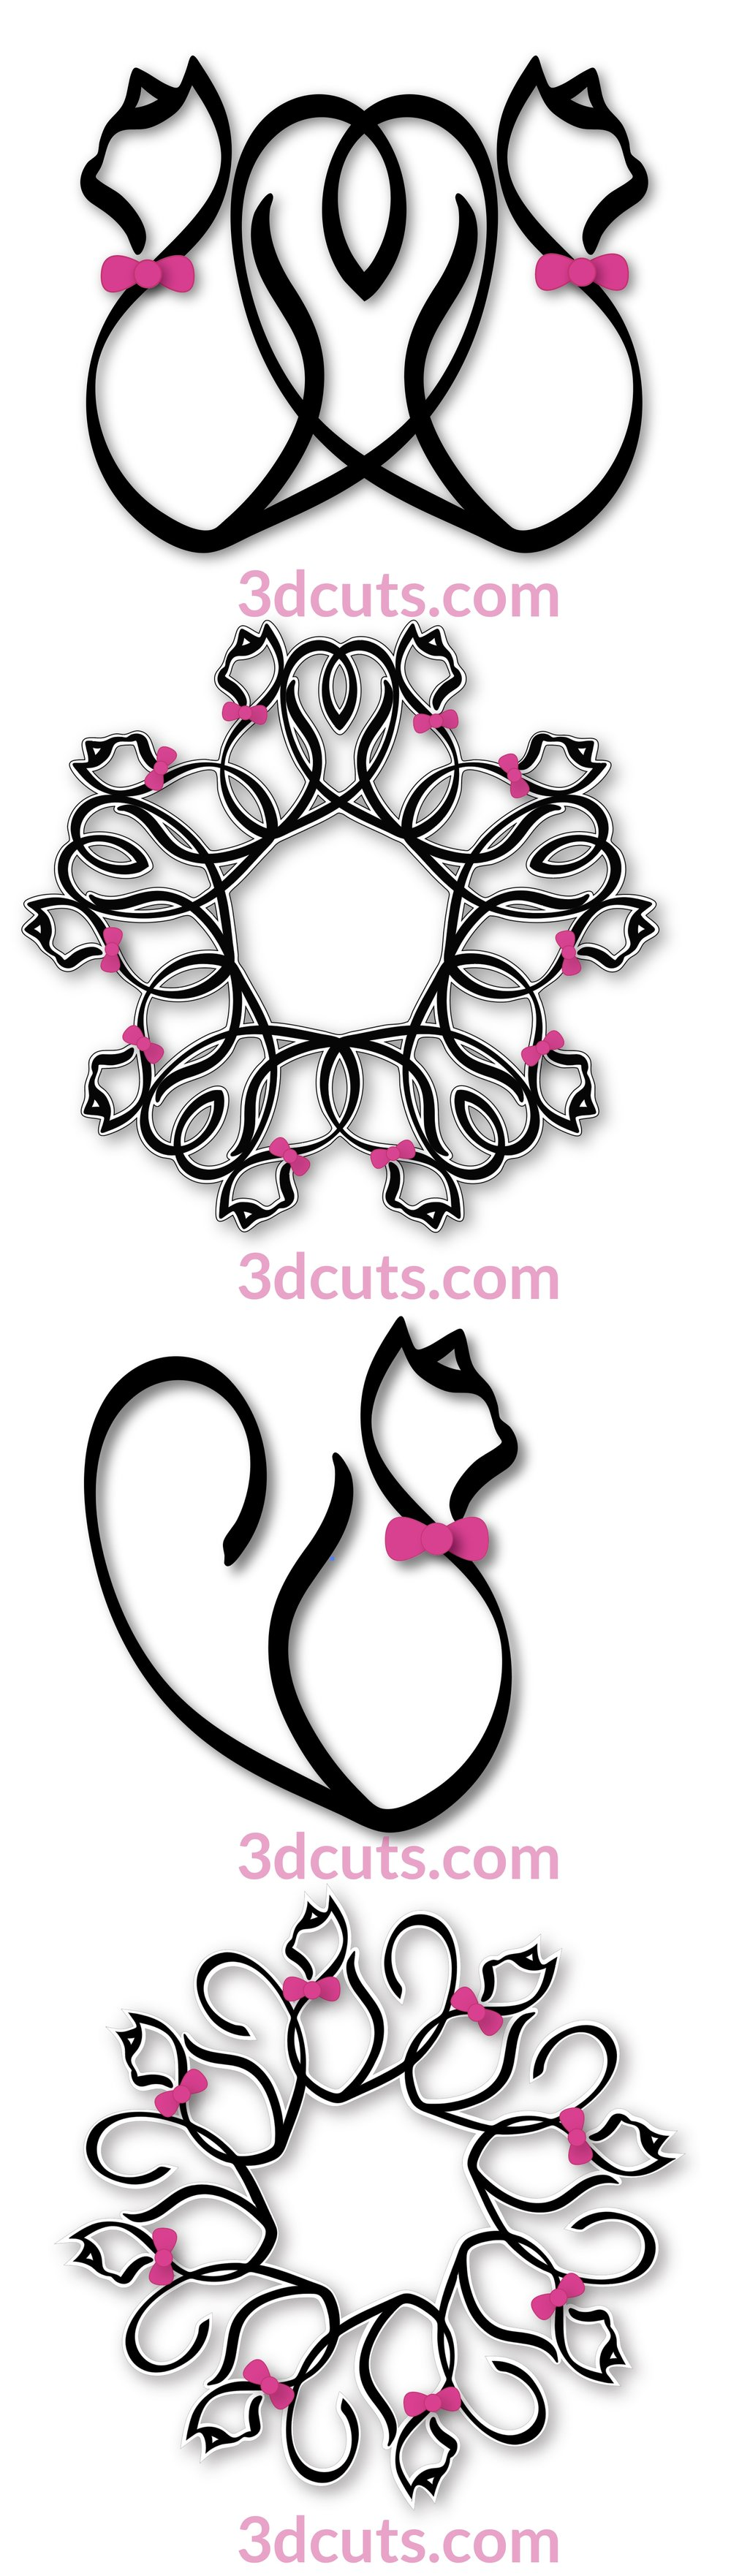 Calligraphic Kitties by 3dCuts.com, by Marji Roy, Cutting files in .svg, .dxf, png and .pdf formats for use with Silhouette, Cricut and Brother cutting machines, paper crafting files, SVG Files